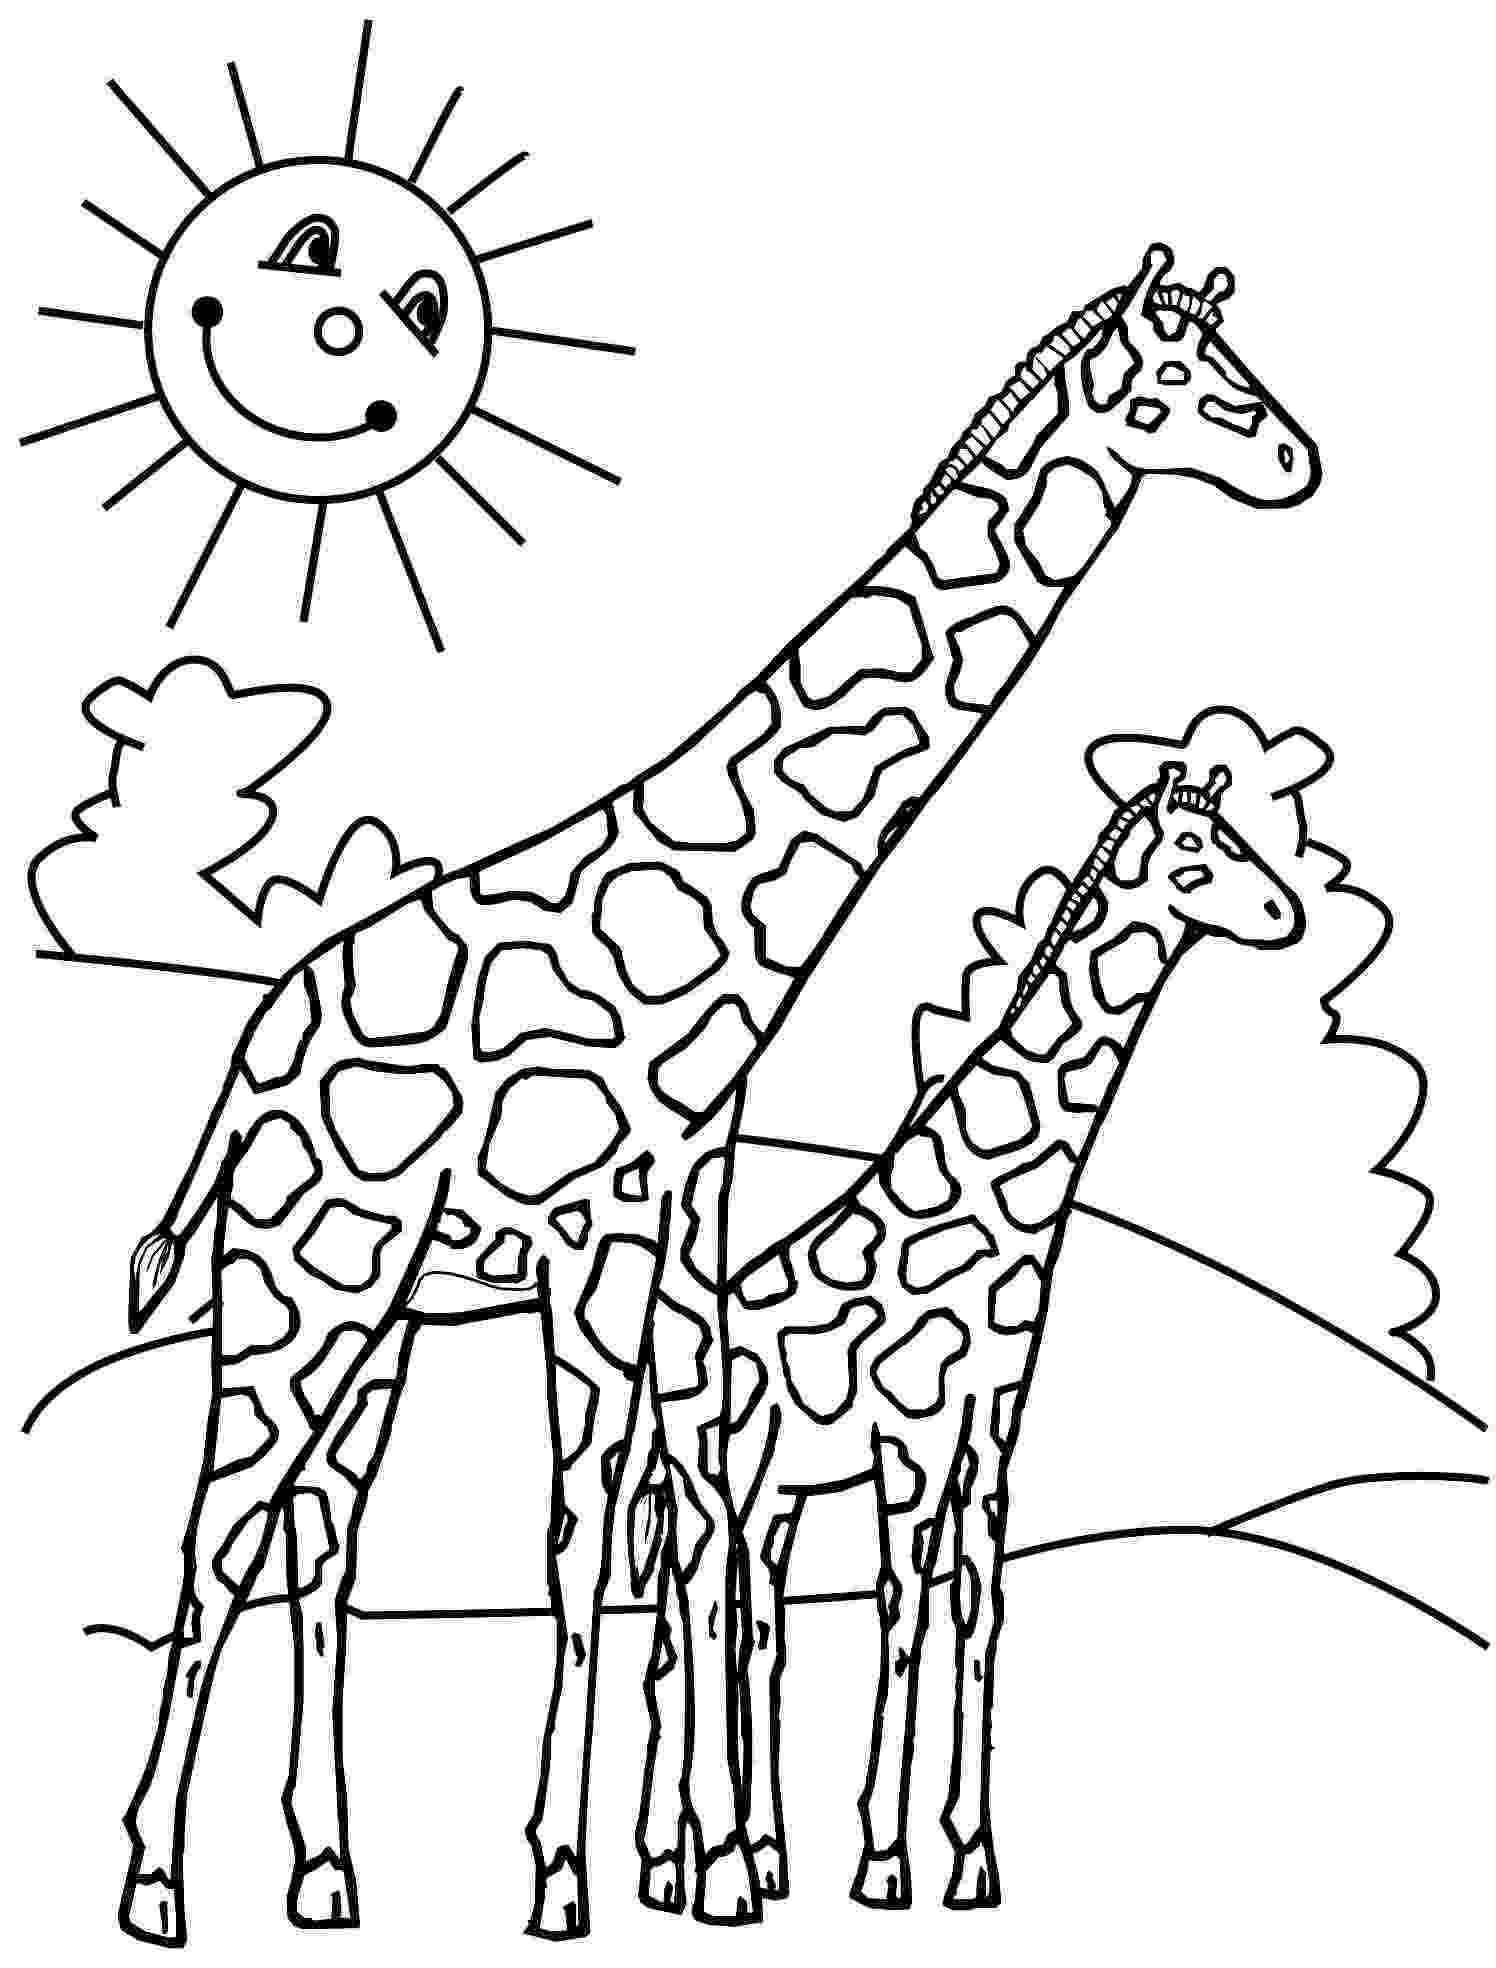 colouring pages for giraffe realistic giraffe coloring page free printable coloring giraffe pages for colouring